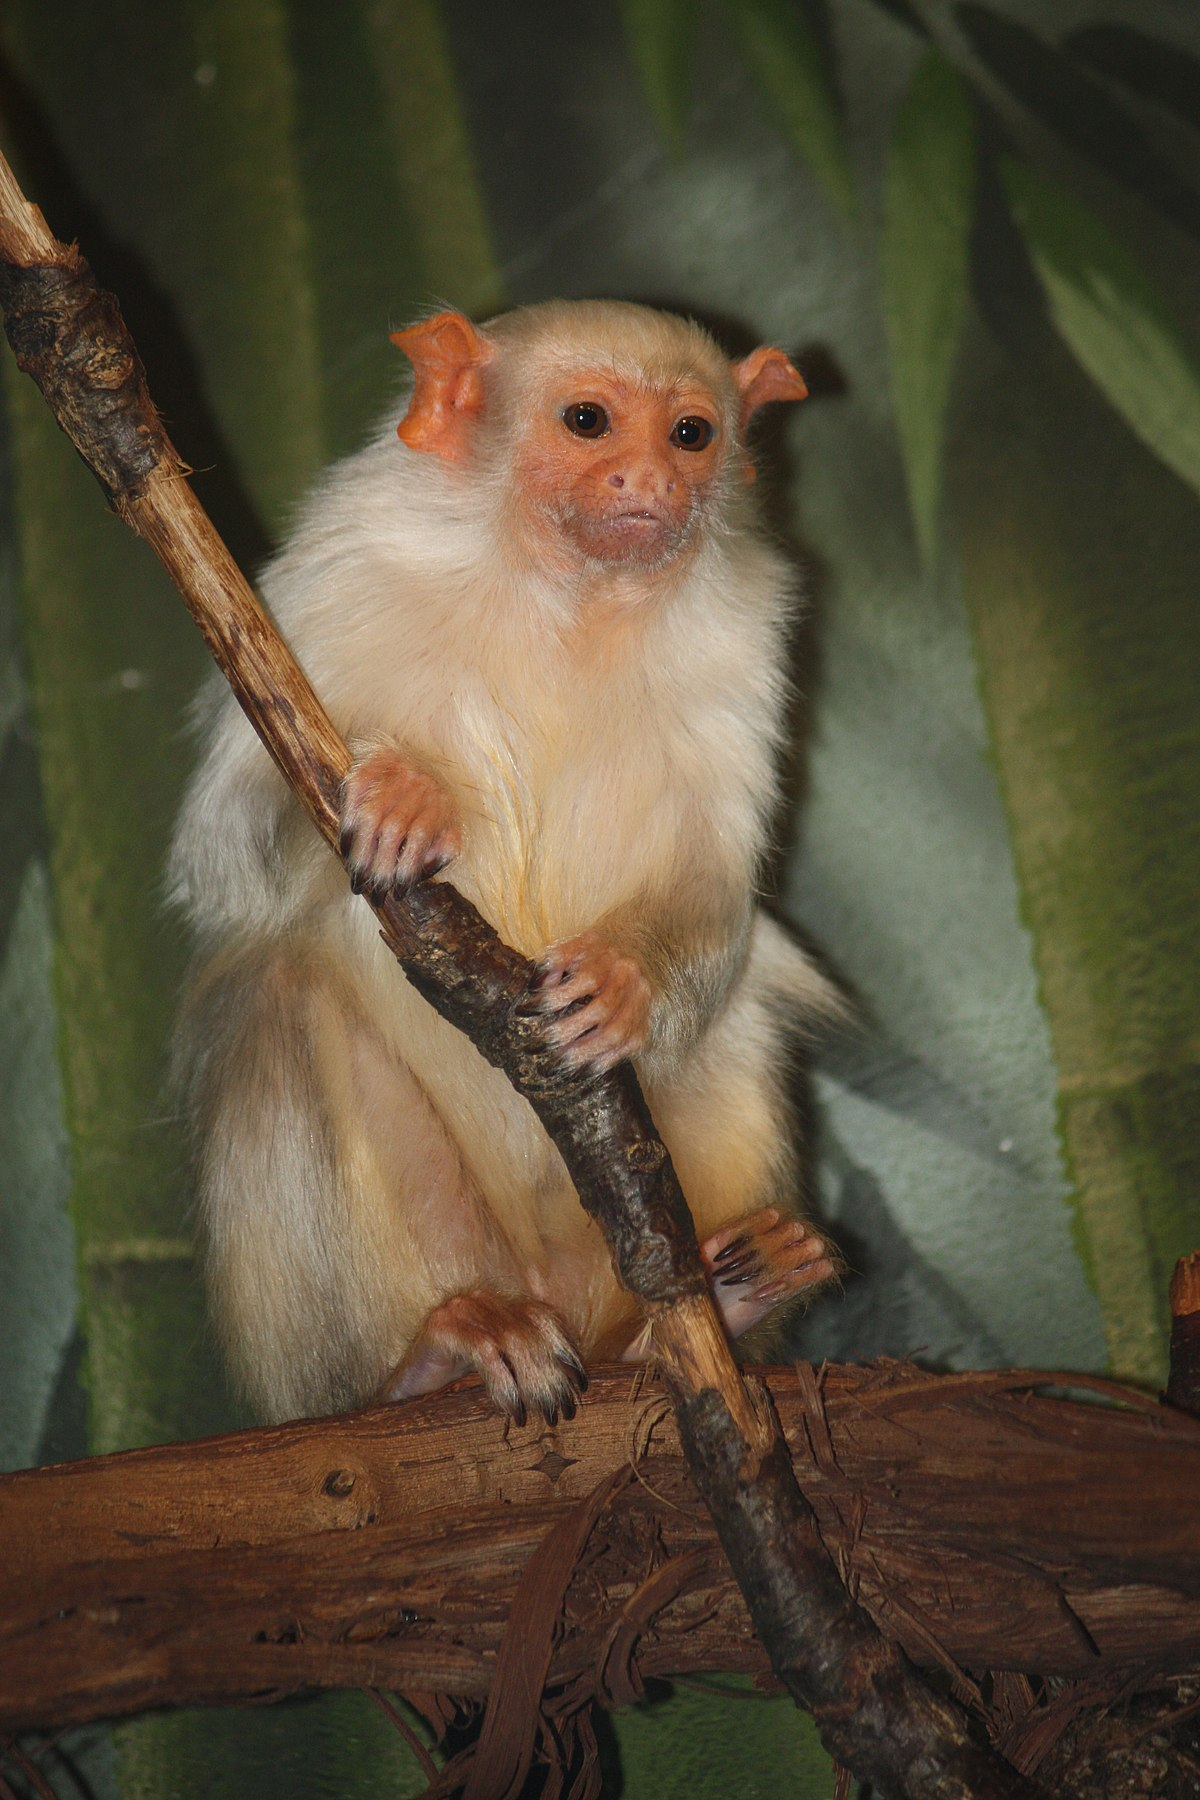 Photos: Silvery Marmoset